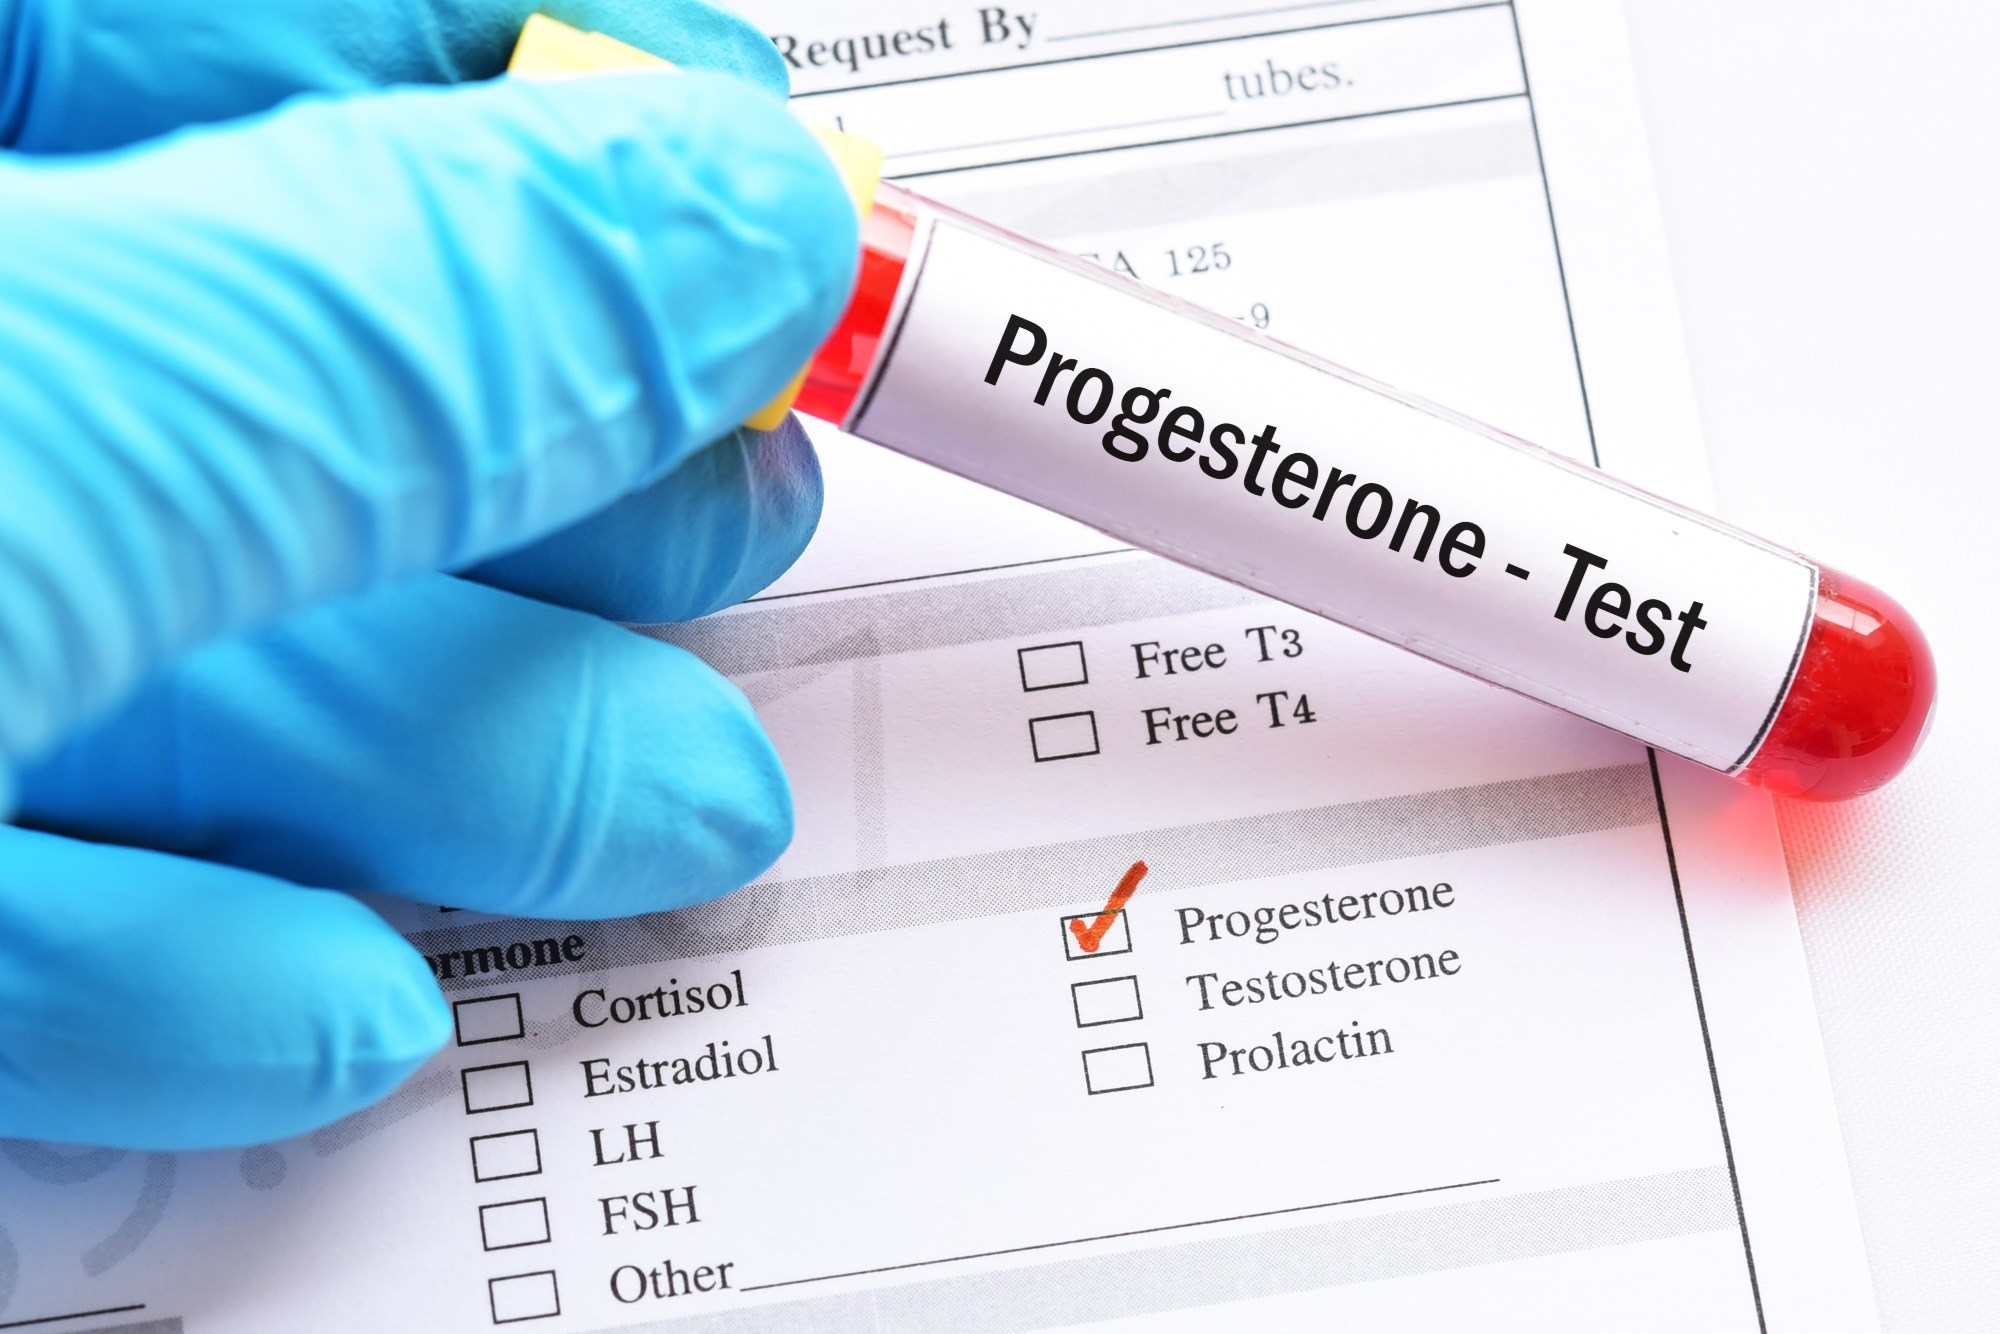 Midluteal Progesterone May Be a Marker for Fertility Treatment Outcomes